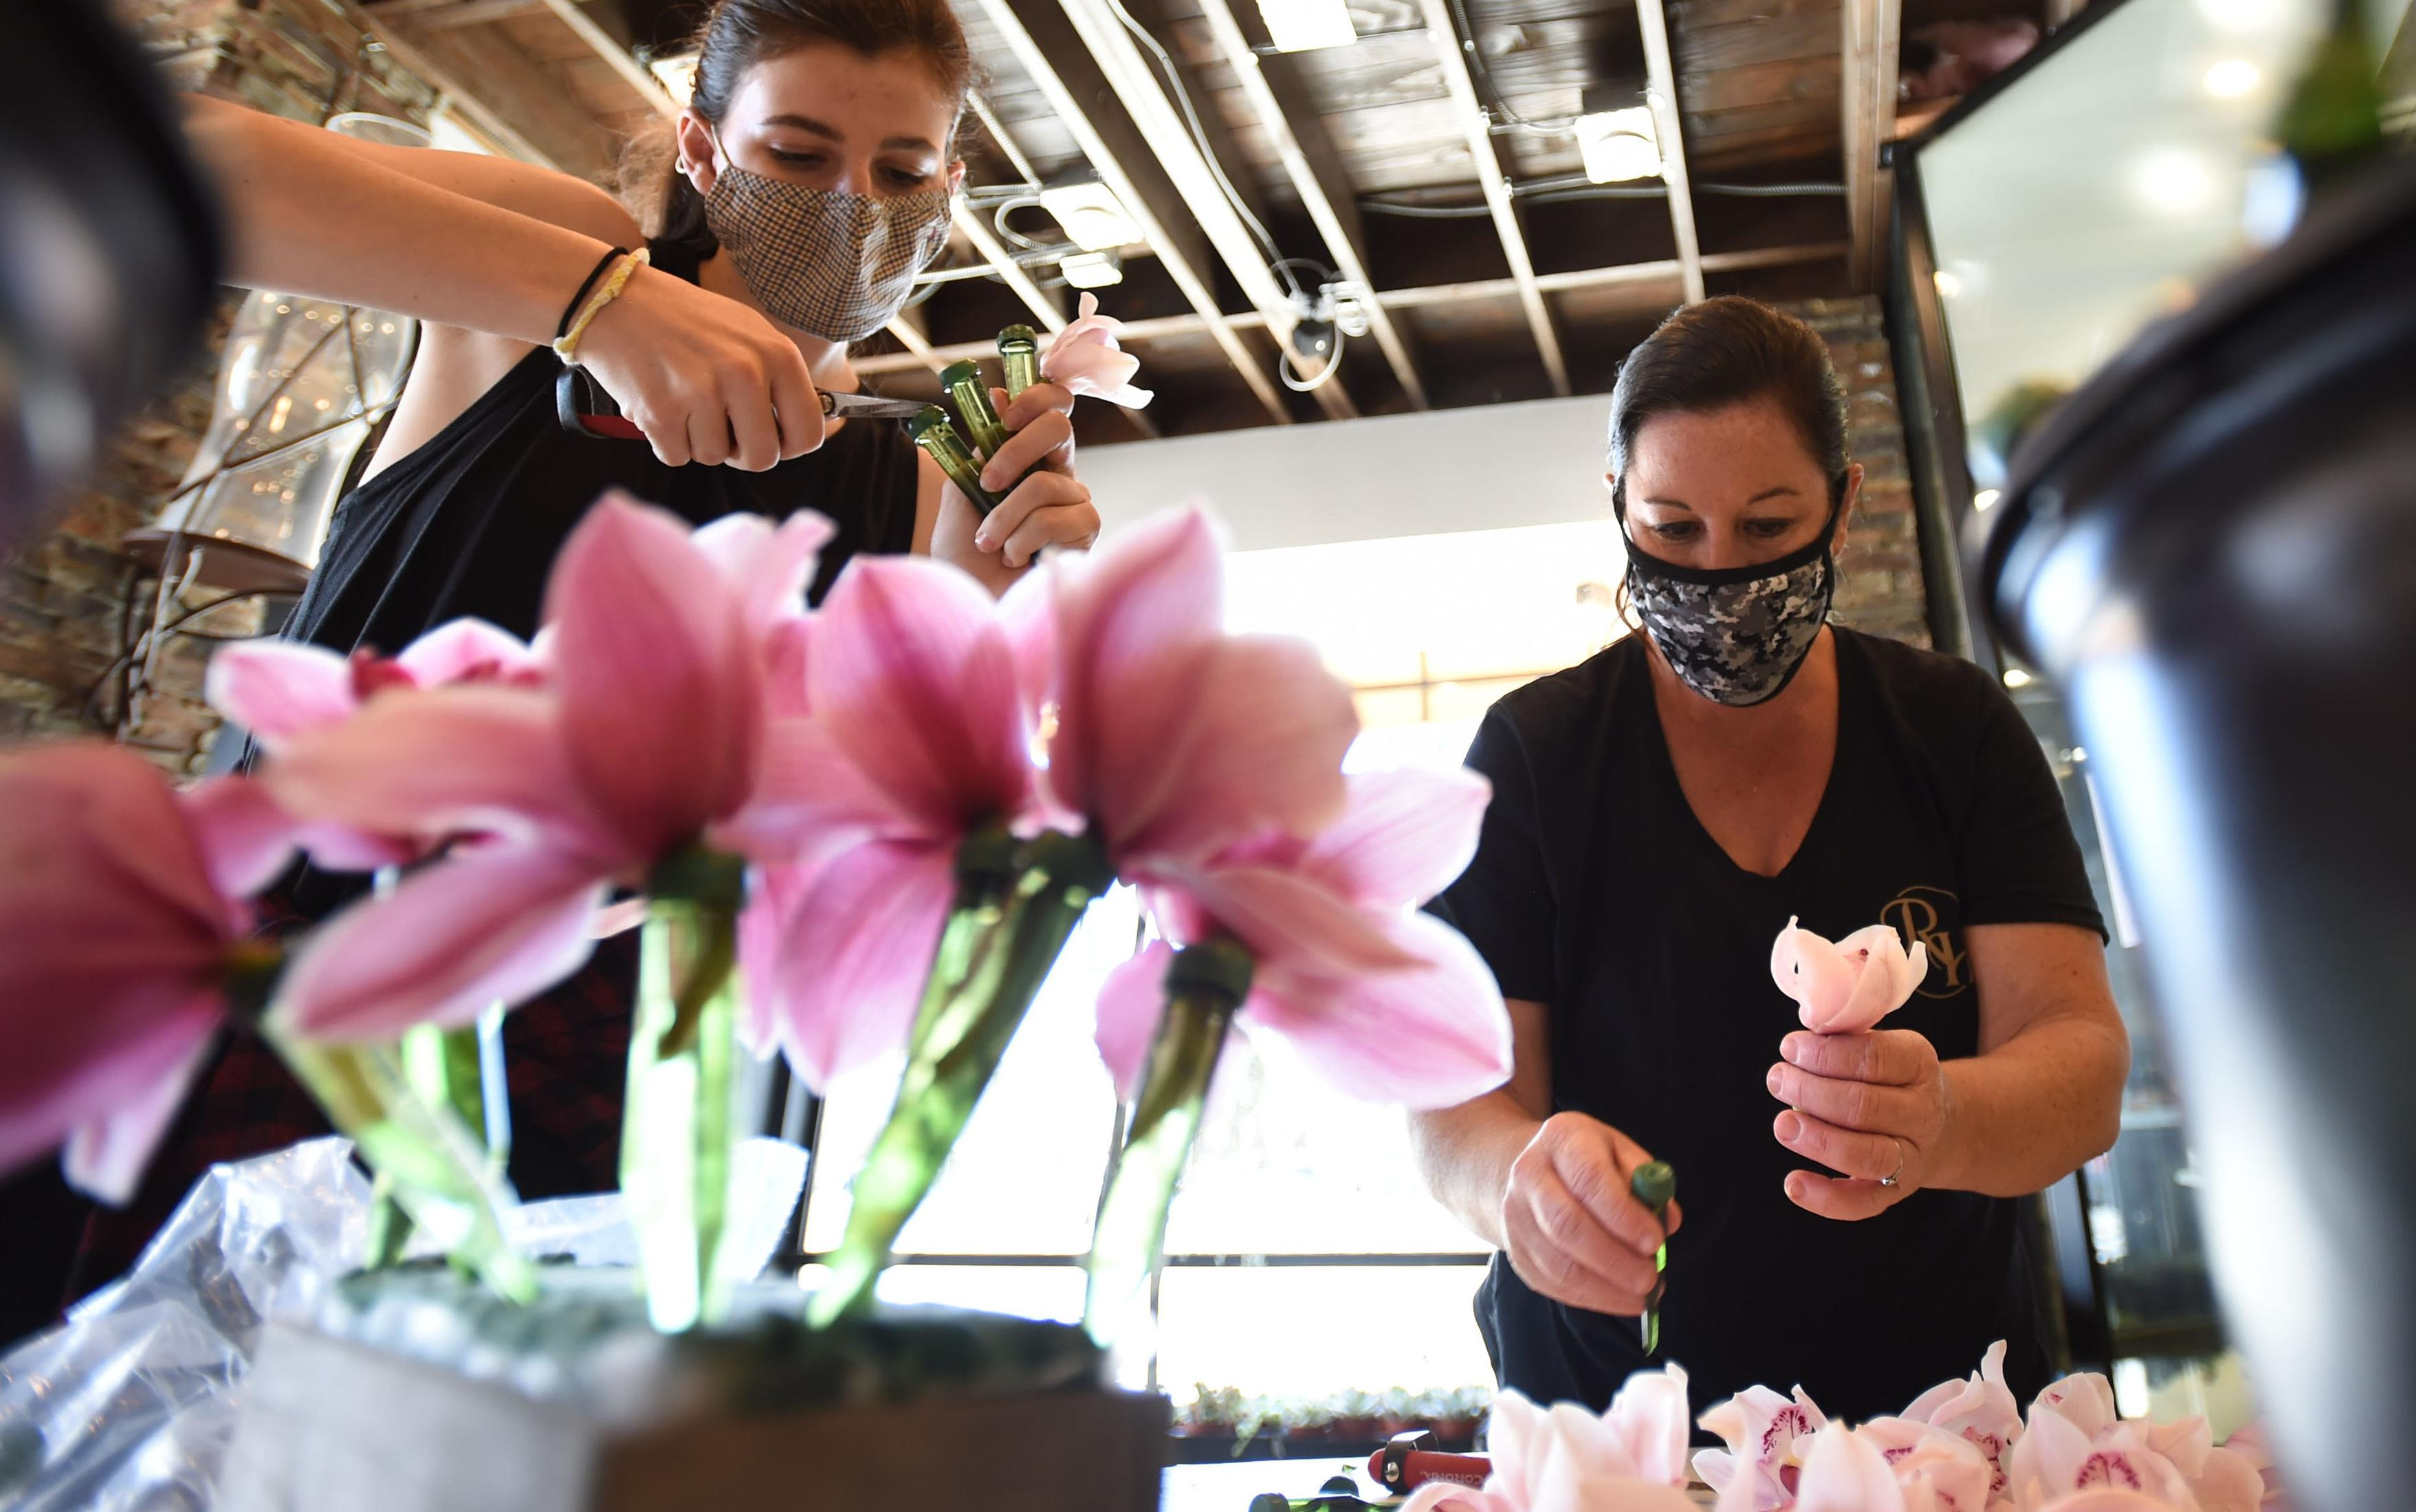 Florist are busy filling orders for Mother's Day now that Governor Newsom has orders shops reopened for curbside pick-up